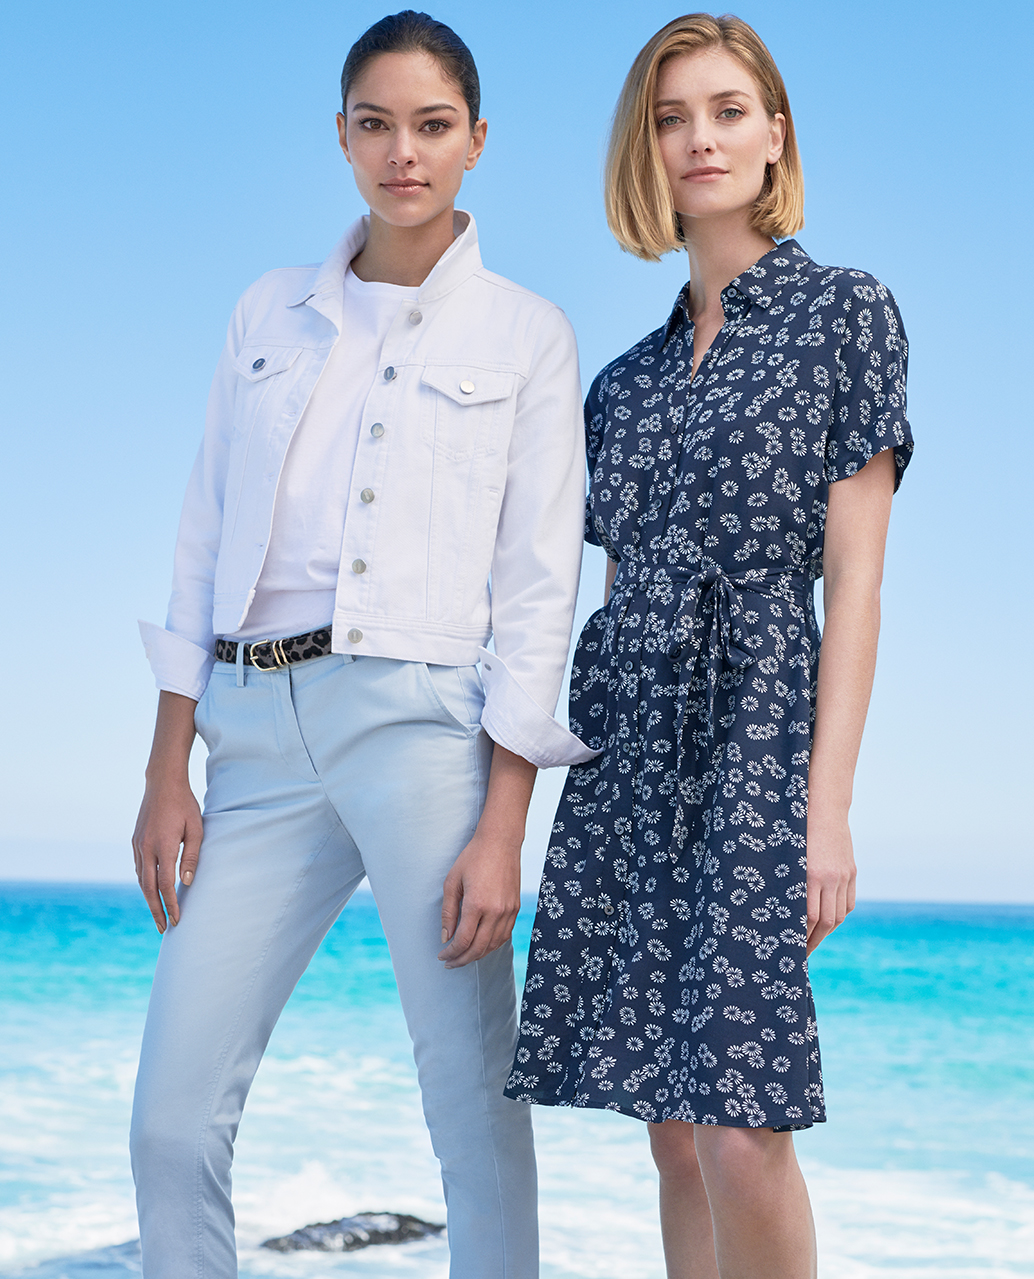 Navy shirt Dress with Ivory Floral Print and White Denim Jacket over Light Blue Chinos